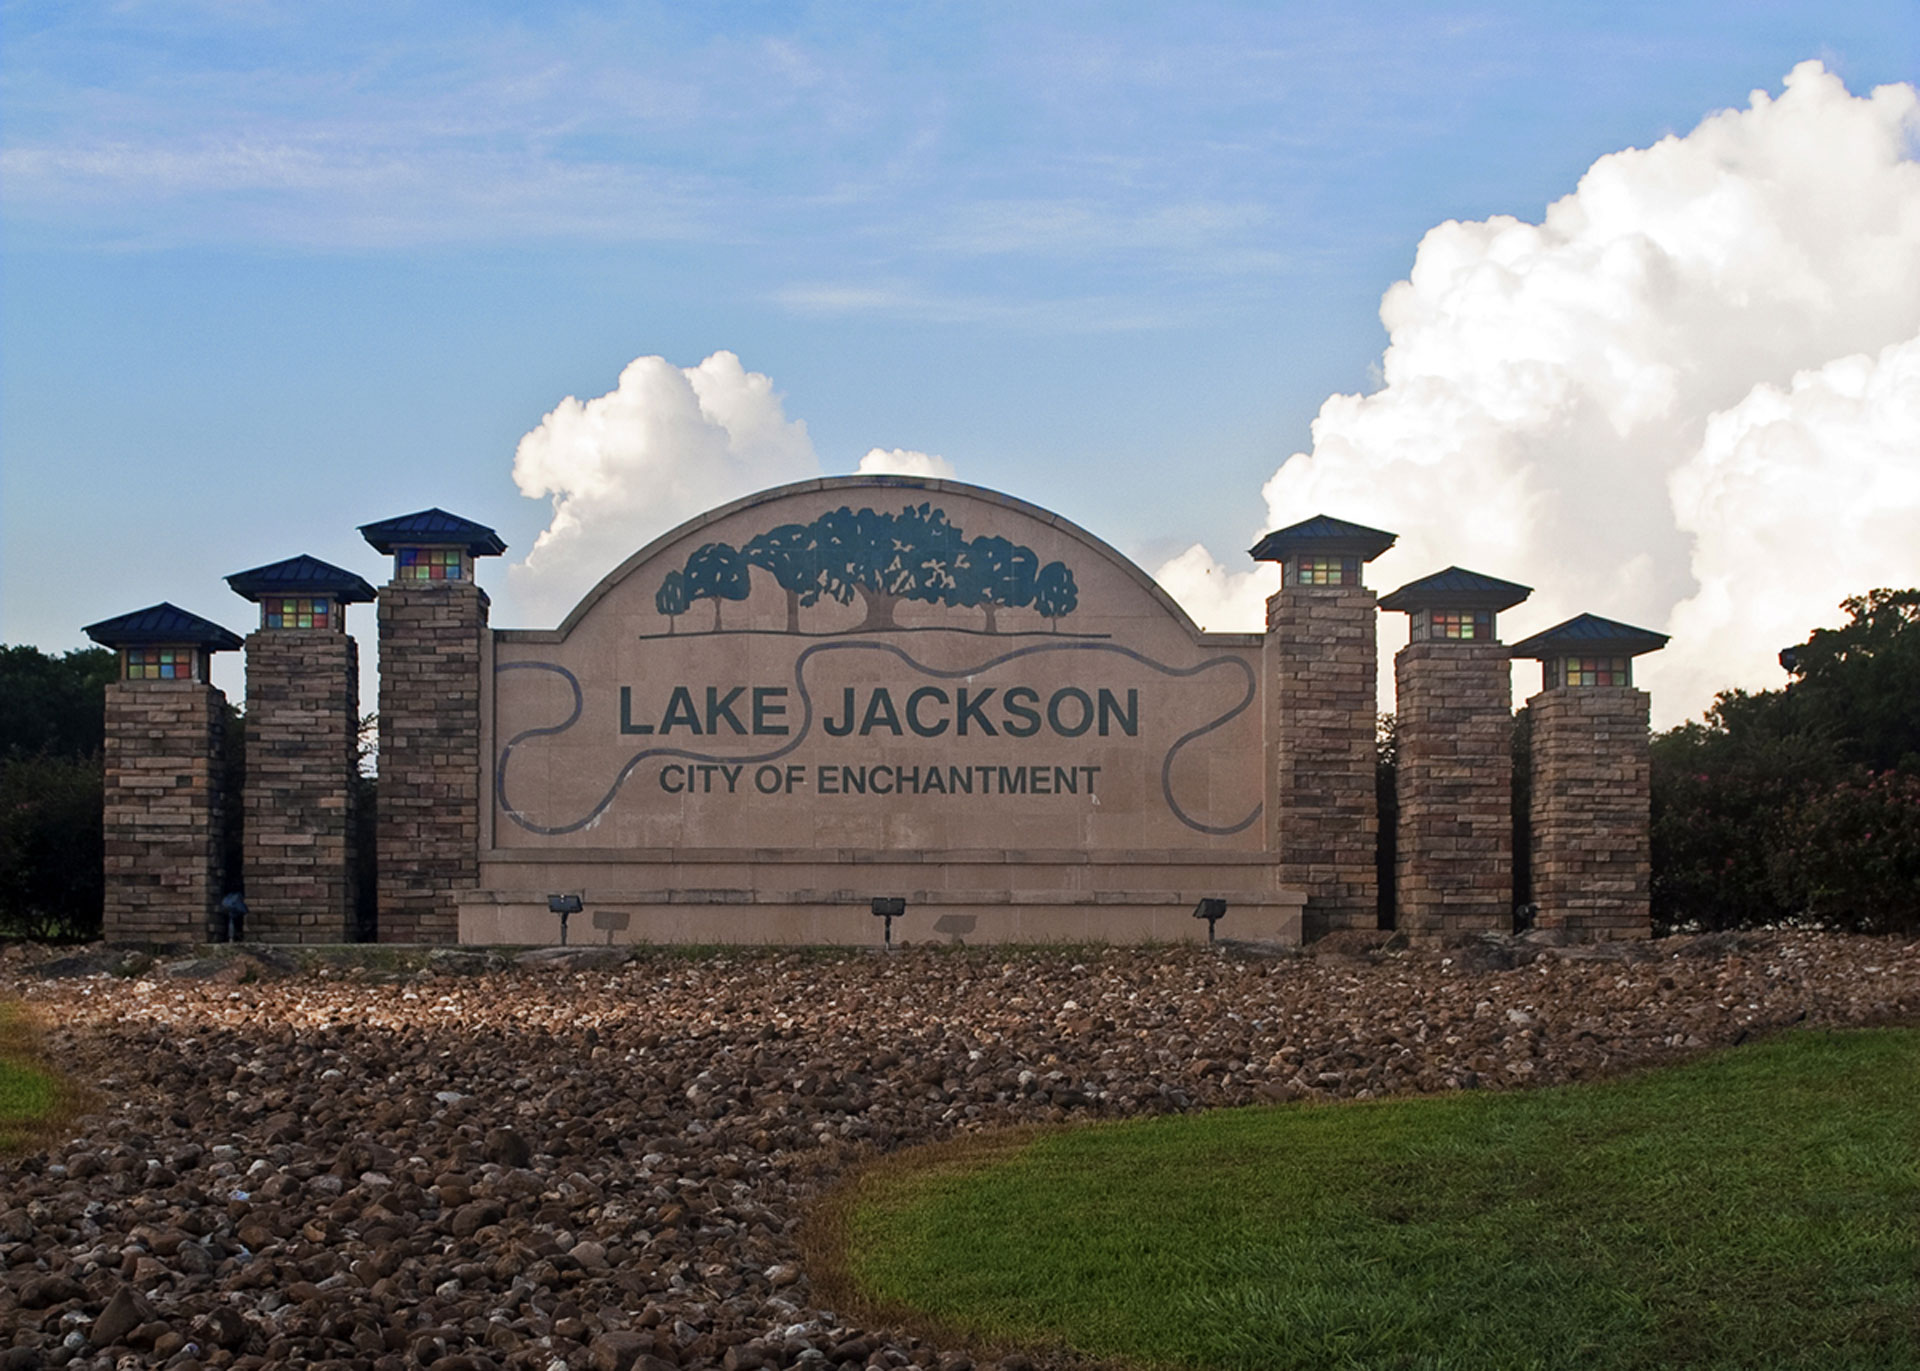 Property management for house rentals, apartment complexes and commercial properties in Lake Jackson Texas